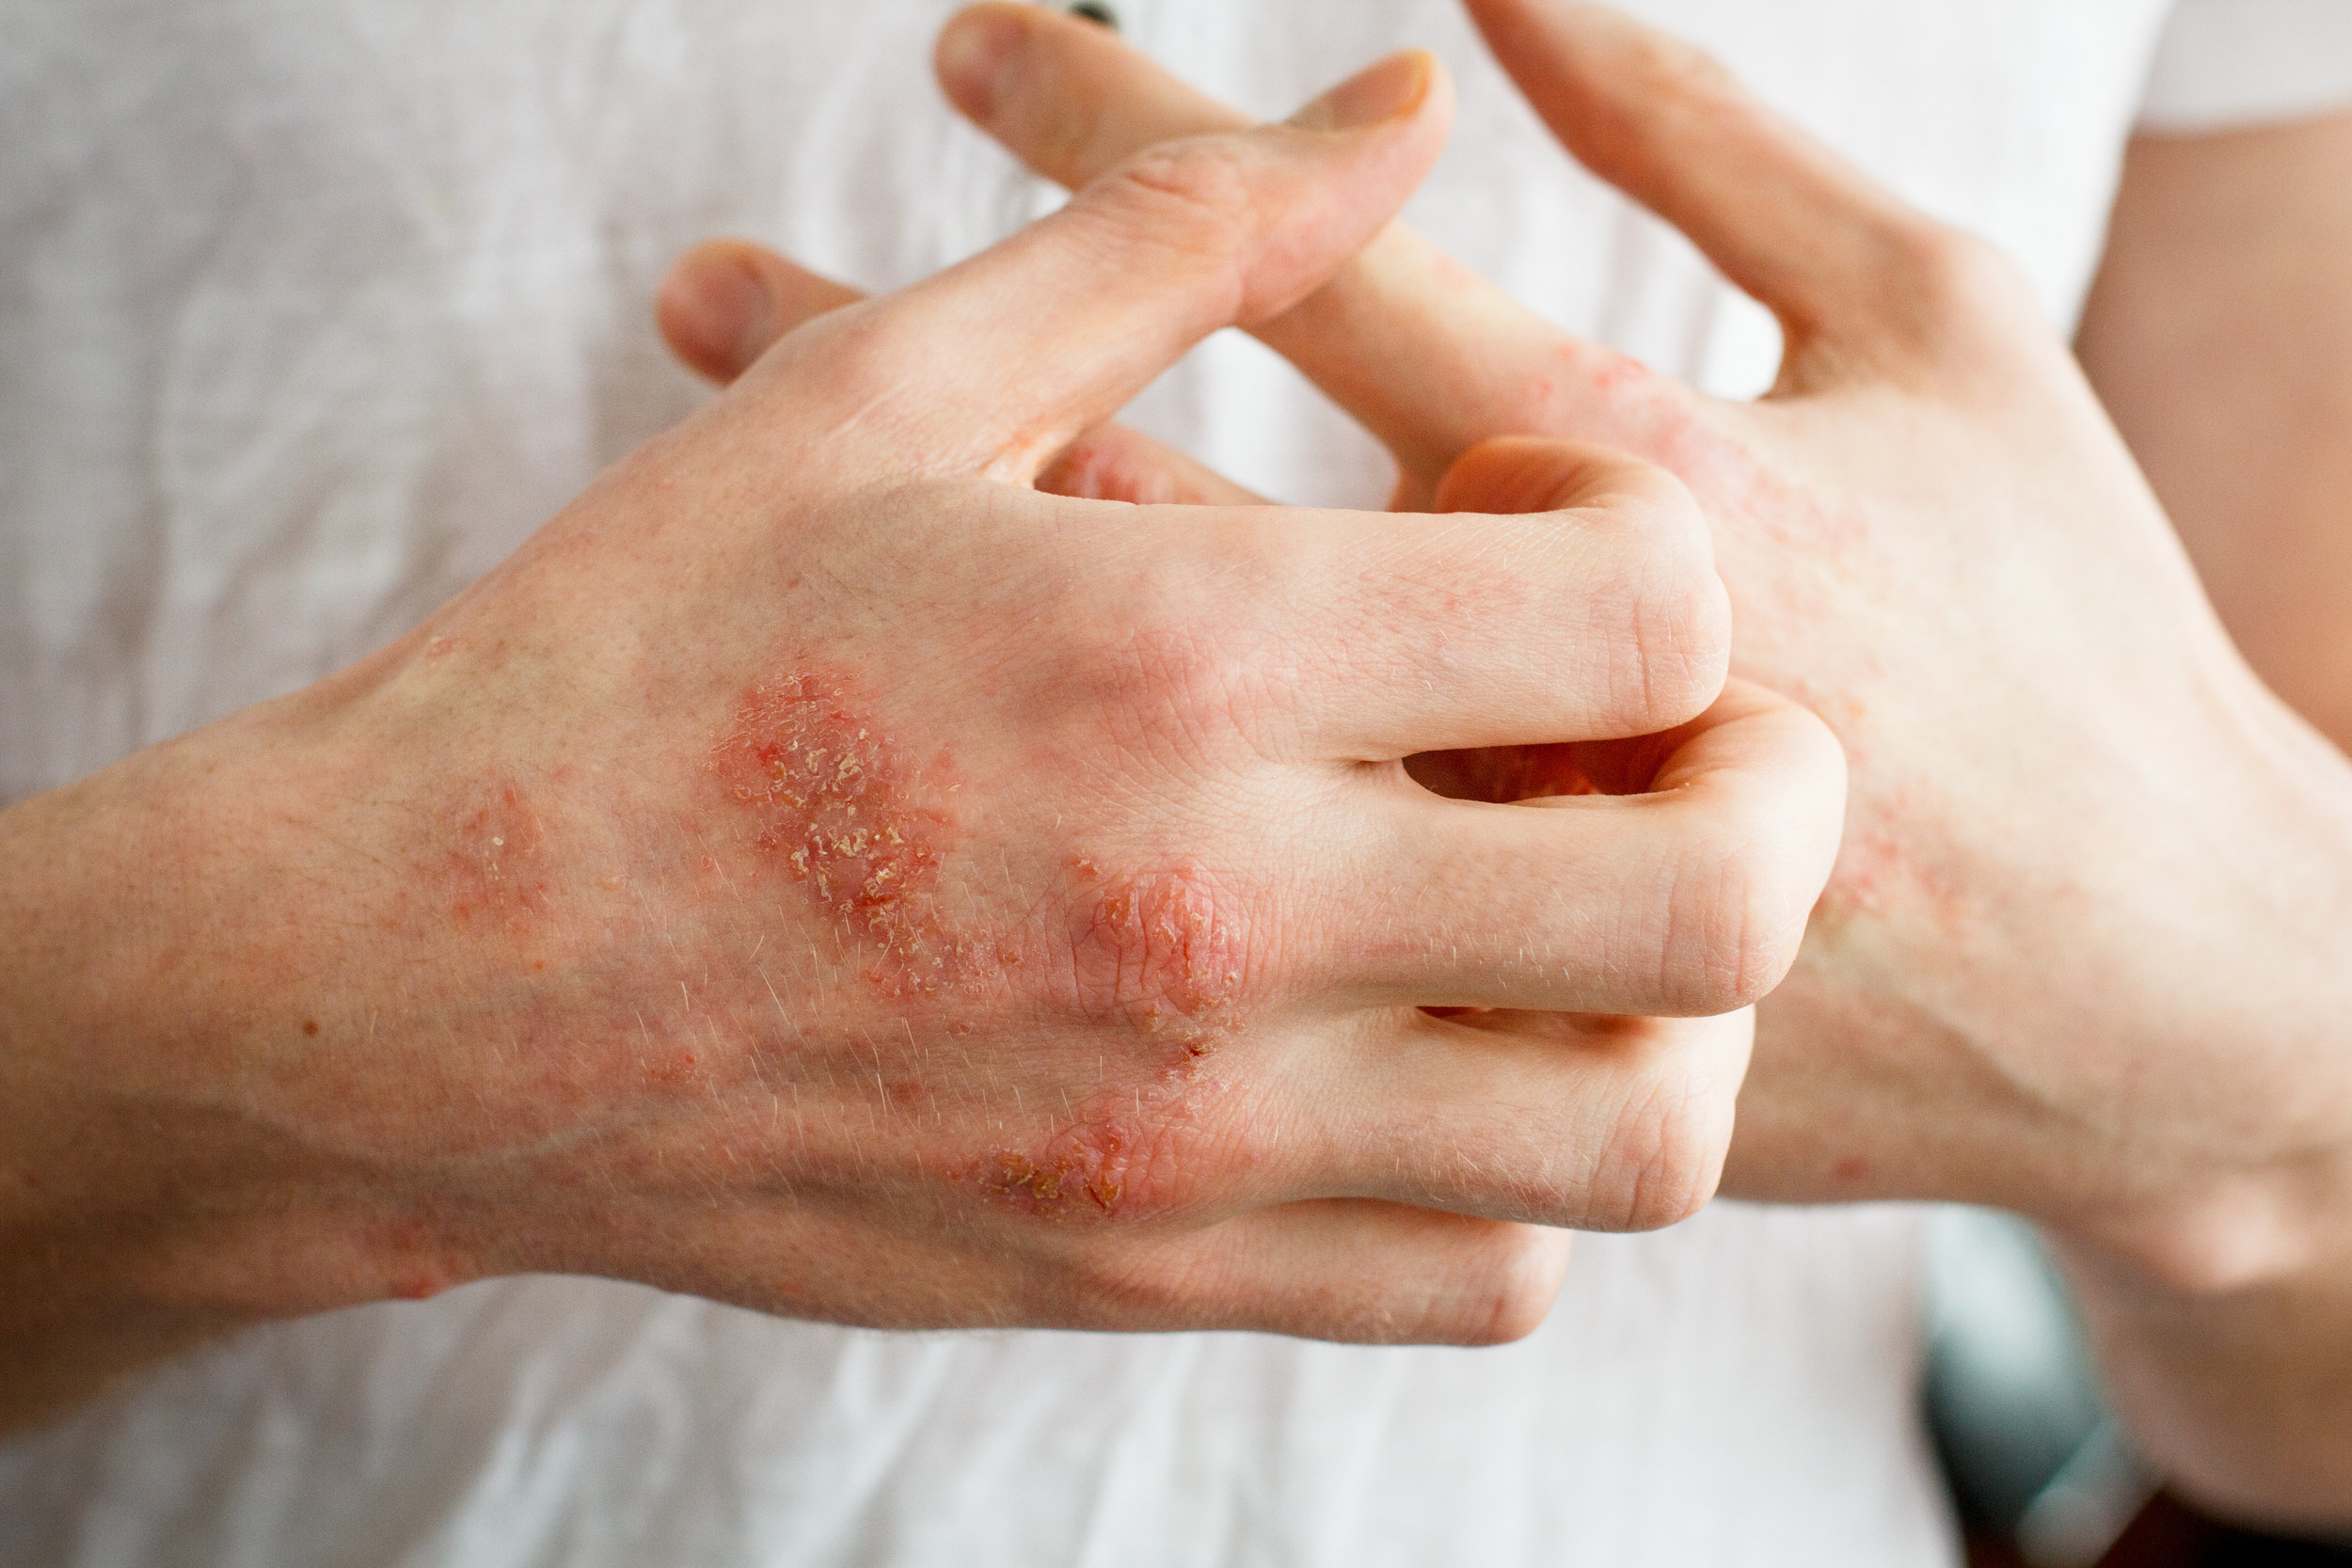 a patient itching their eczema-affected hands